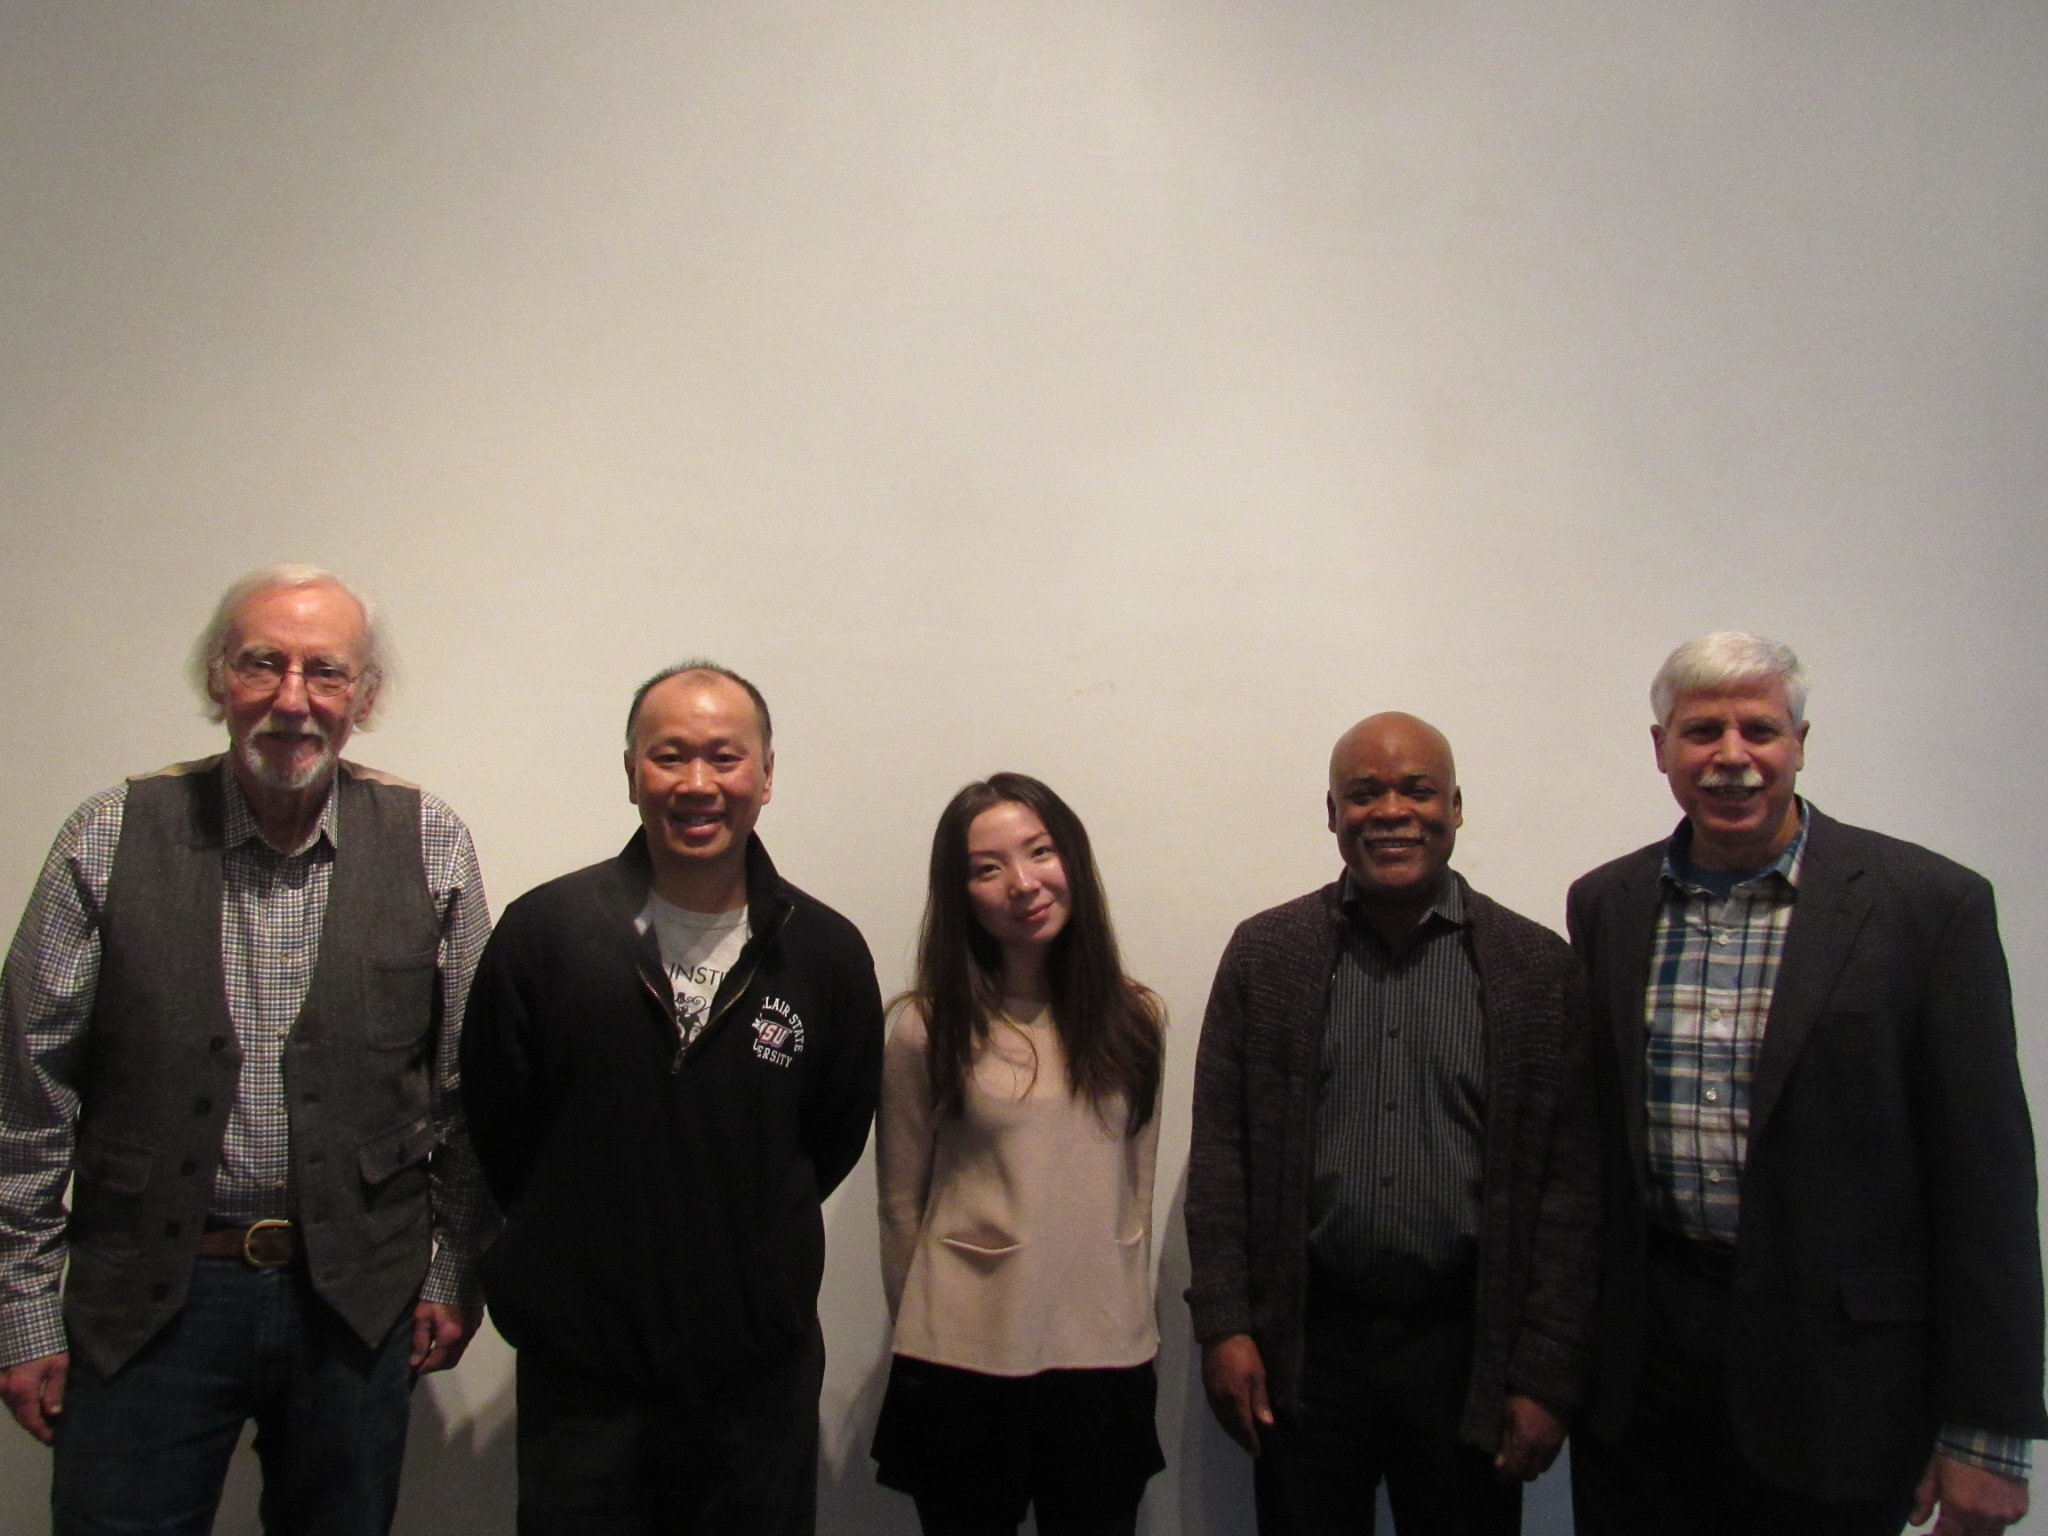 From Left to Right: Vern Ford (BFA '63), Sargent-at-Arms; Tom Wong (Engineering '84), Treasurer; Aika Mukhambetova (MPS-Design Management '15), Vice President; Gil Gerald (Architecture. '74), Secretary; and, Tom Fiorella (Industrial Engineering '74), President.